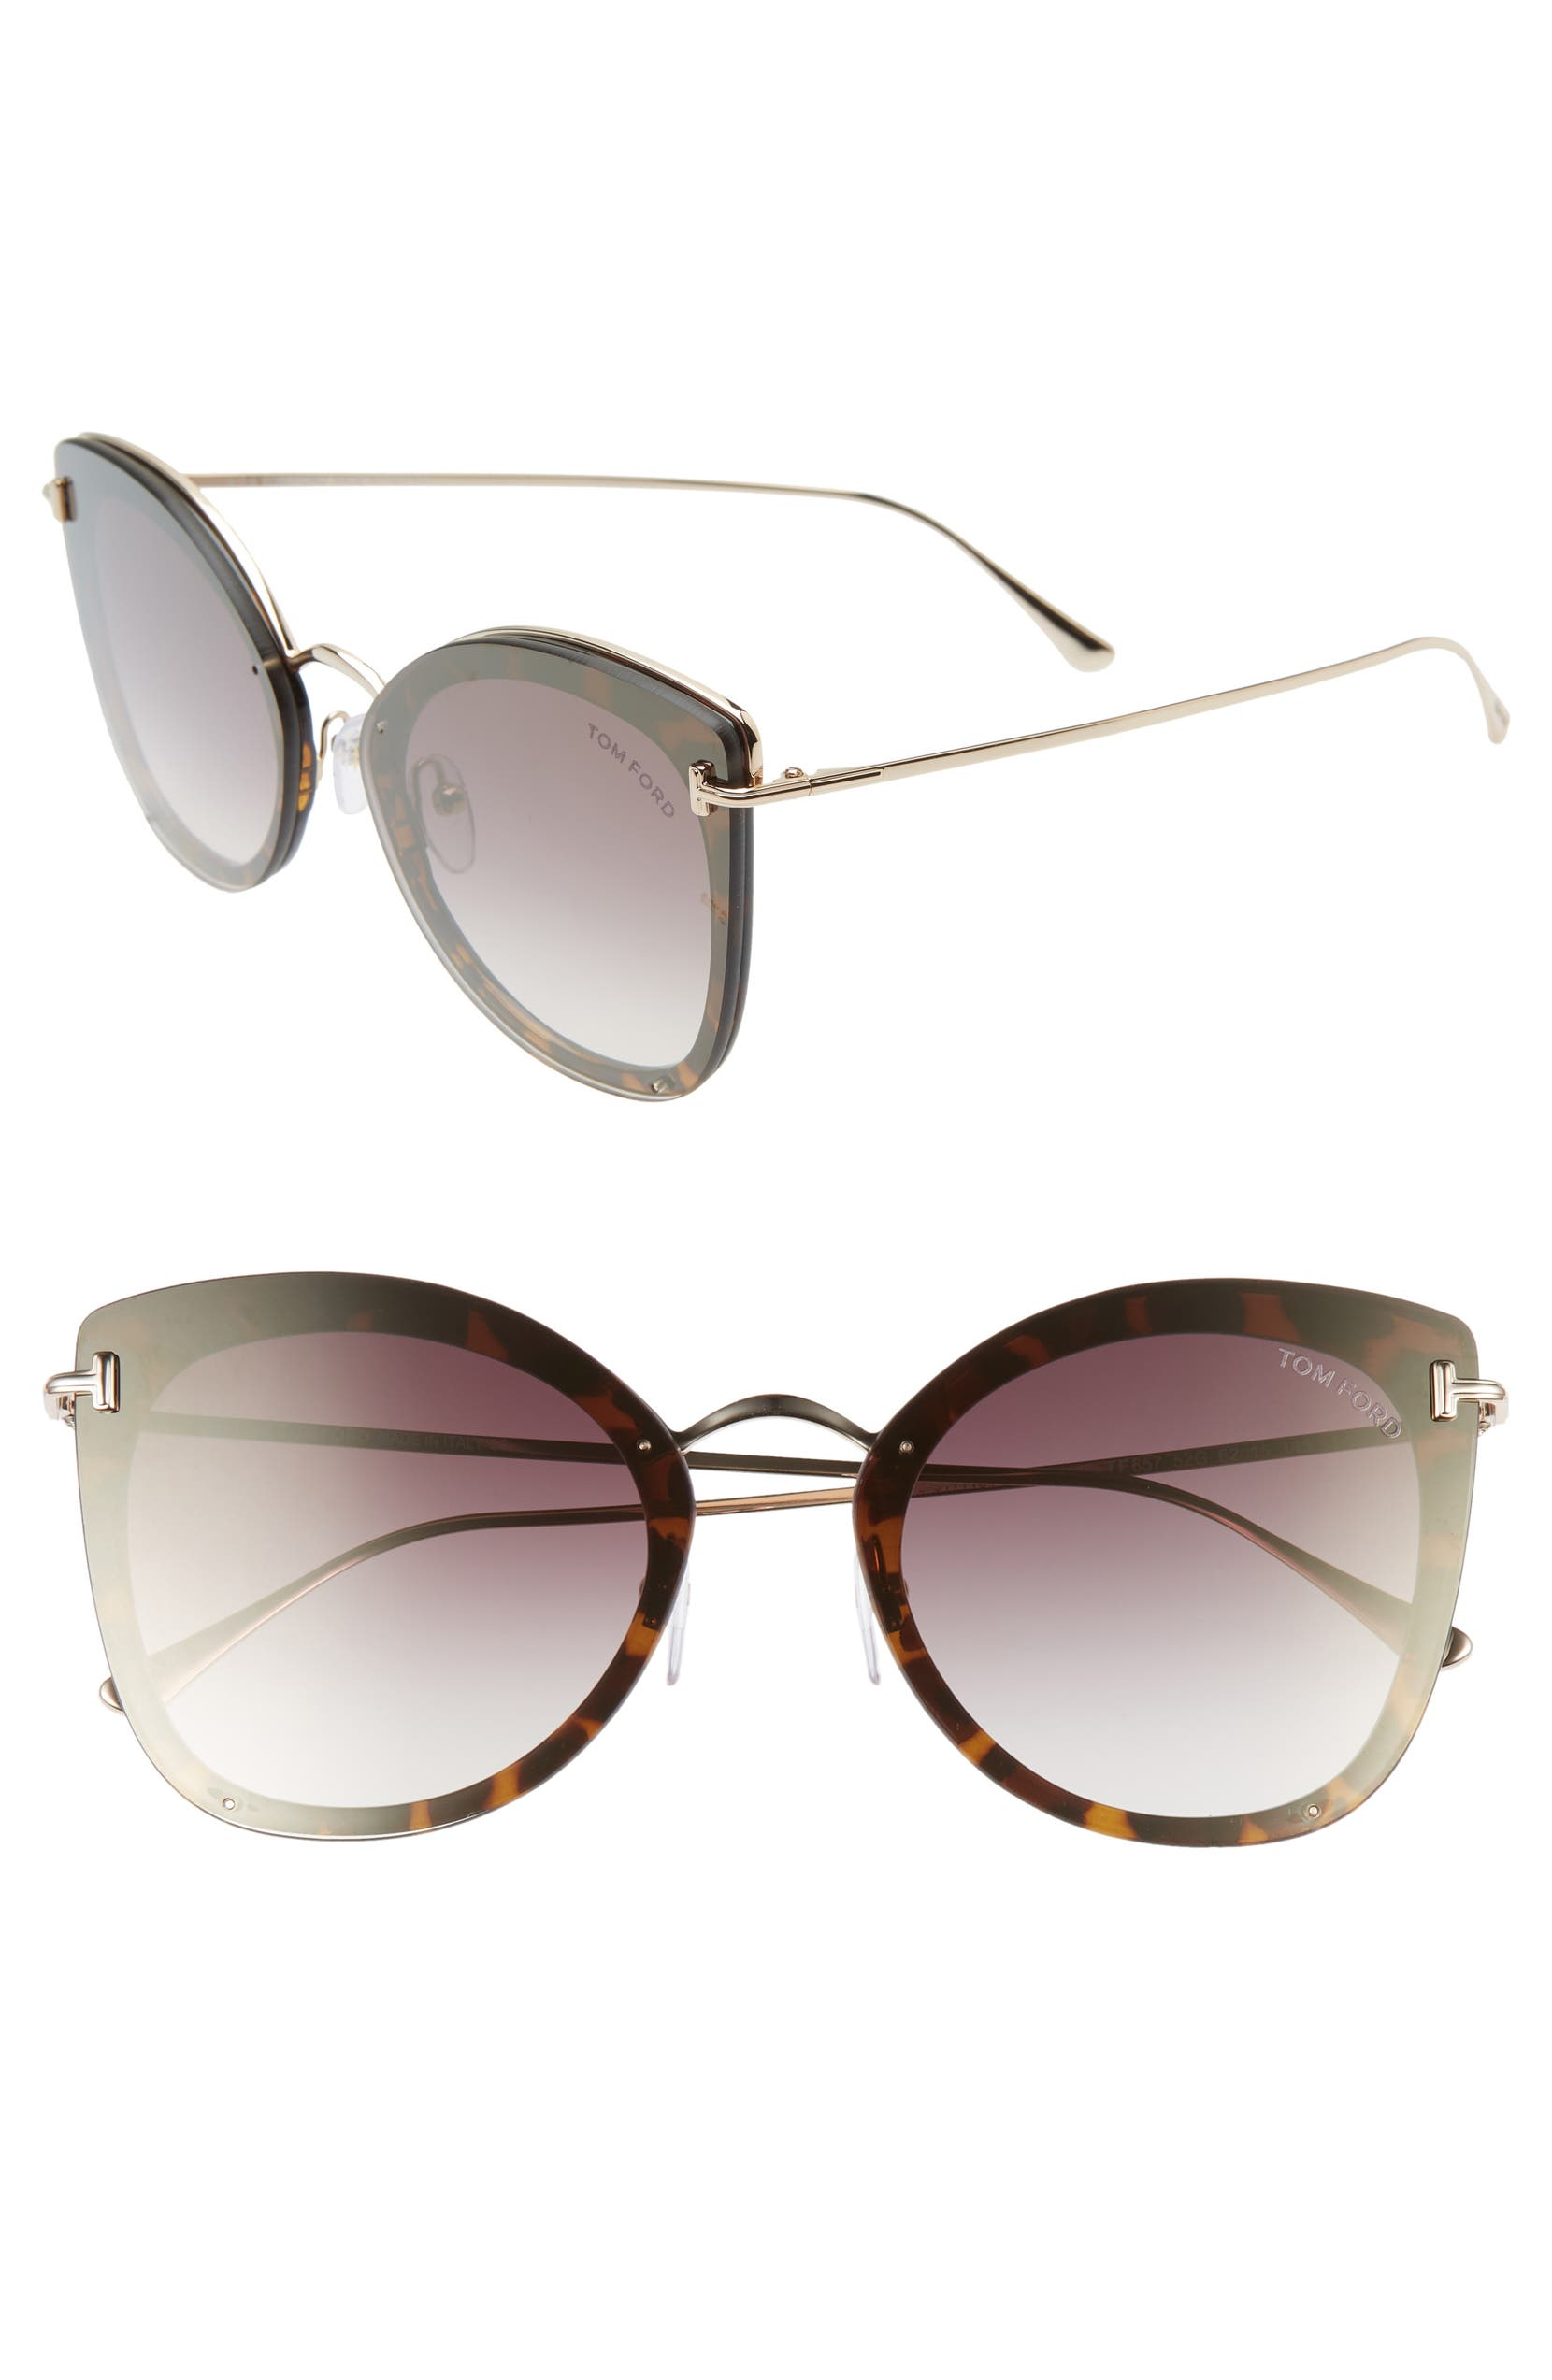 63161dadf8bc1 Tom Ford Charolette 62mm Oversize Butterfly Sunglasses